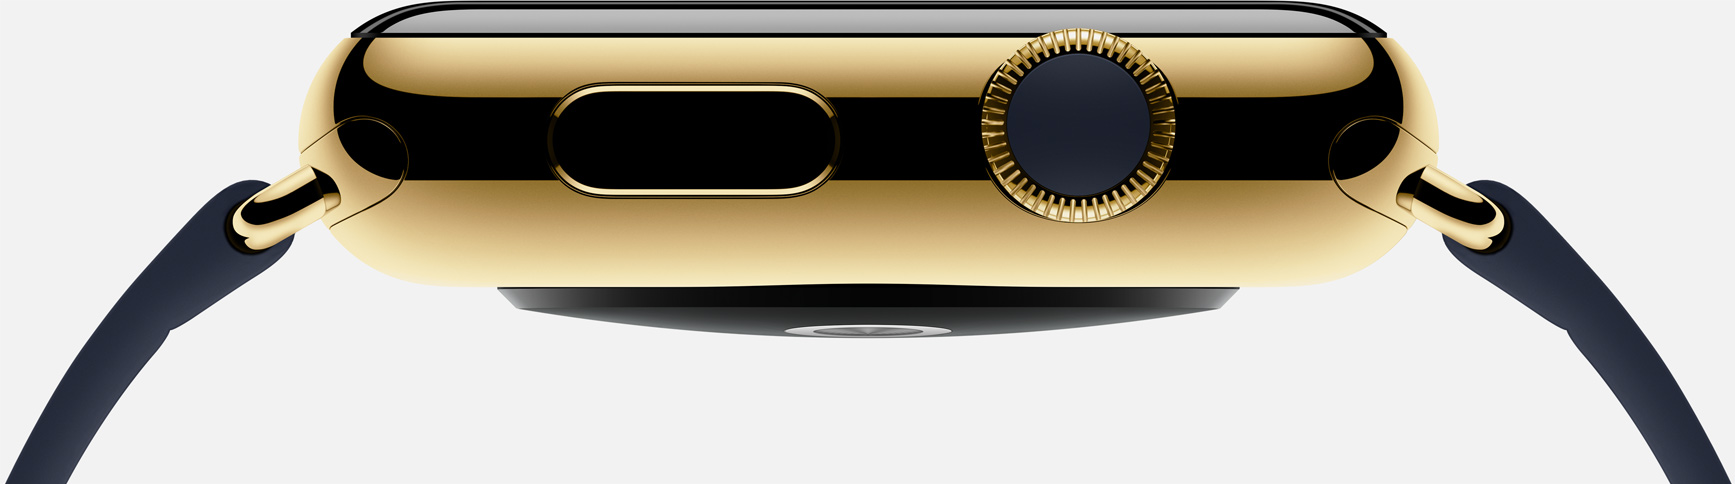 Apple Watch edition gold side